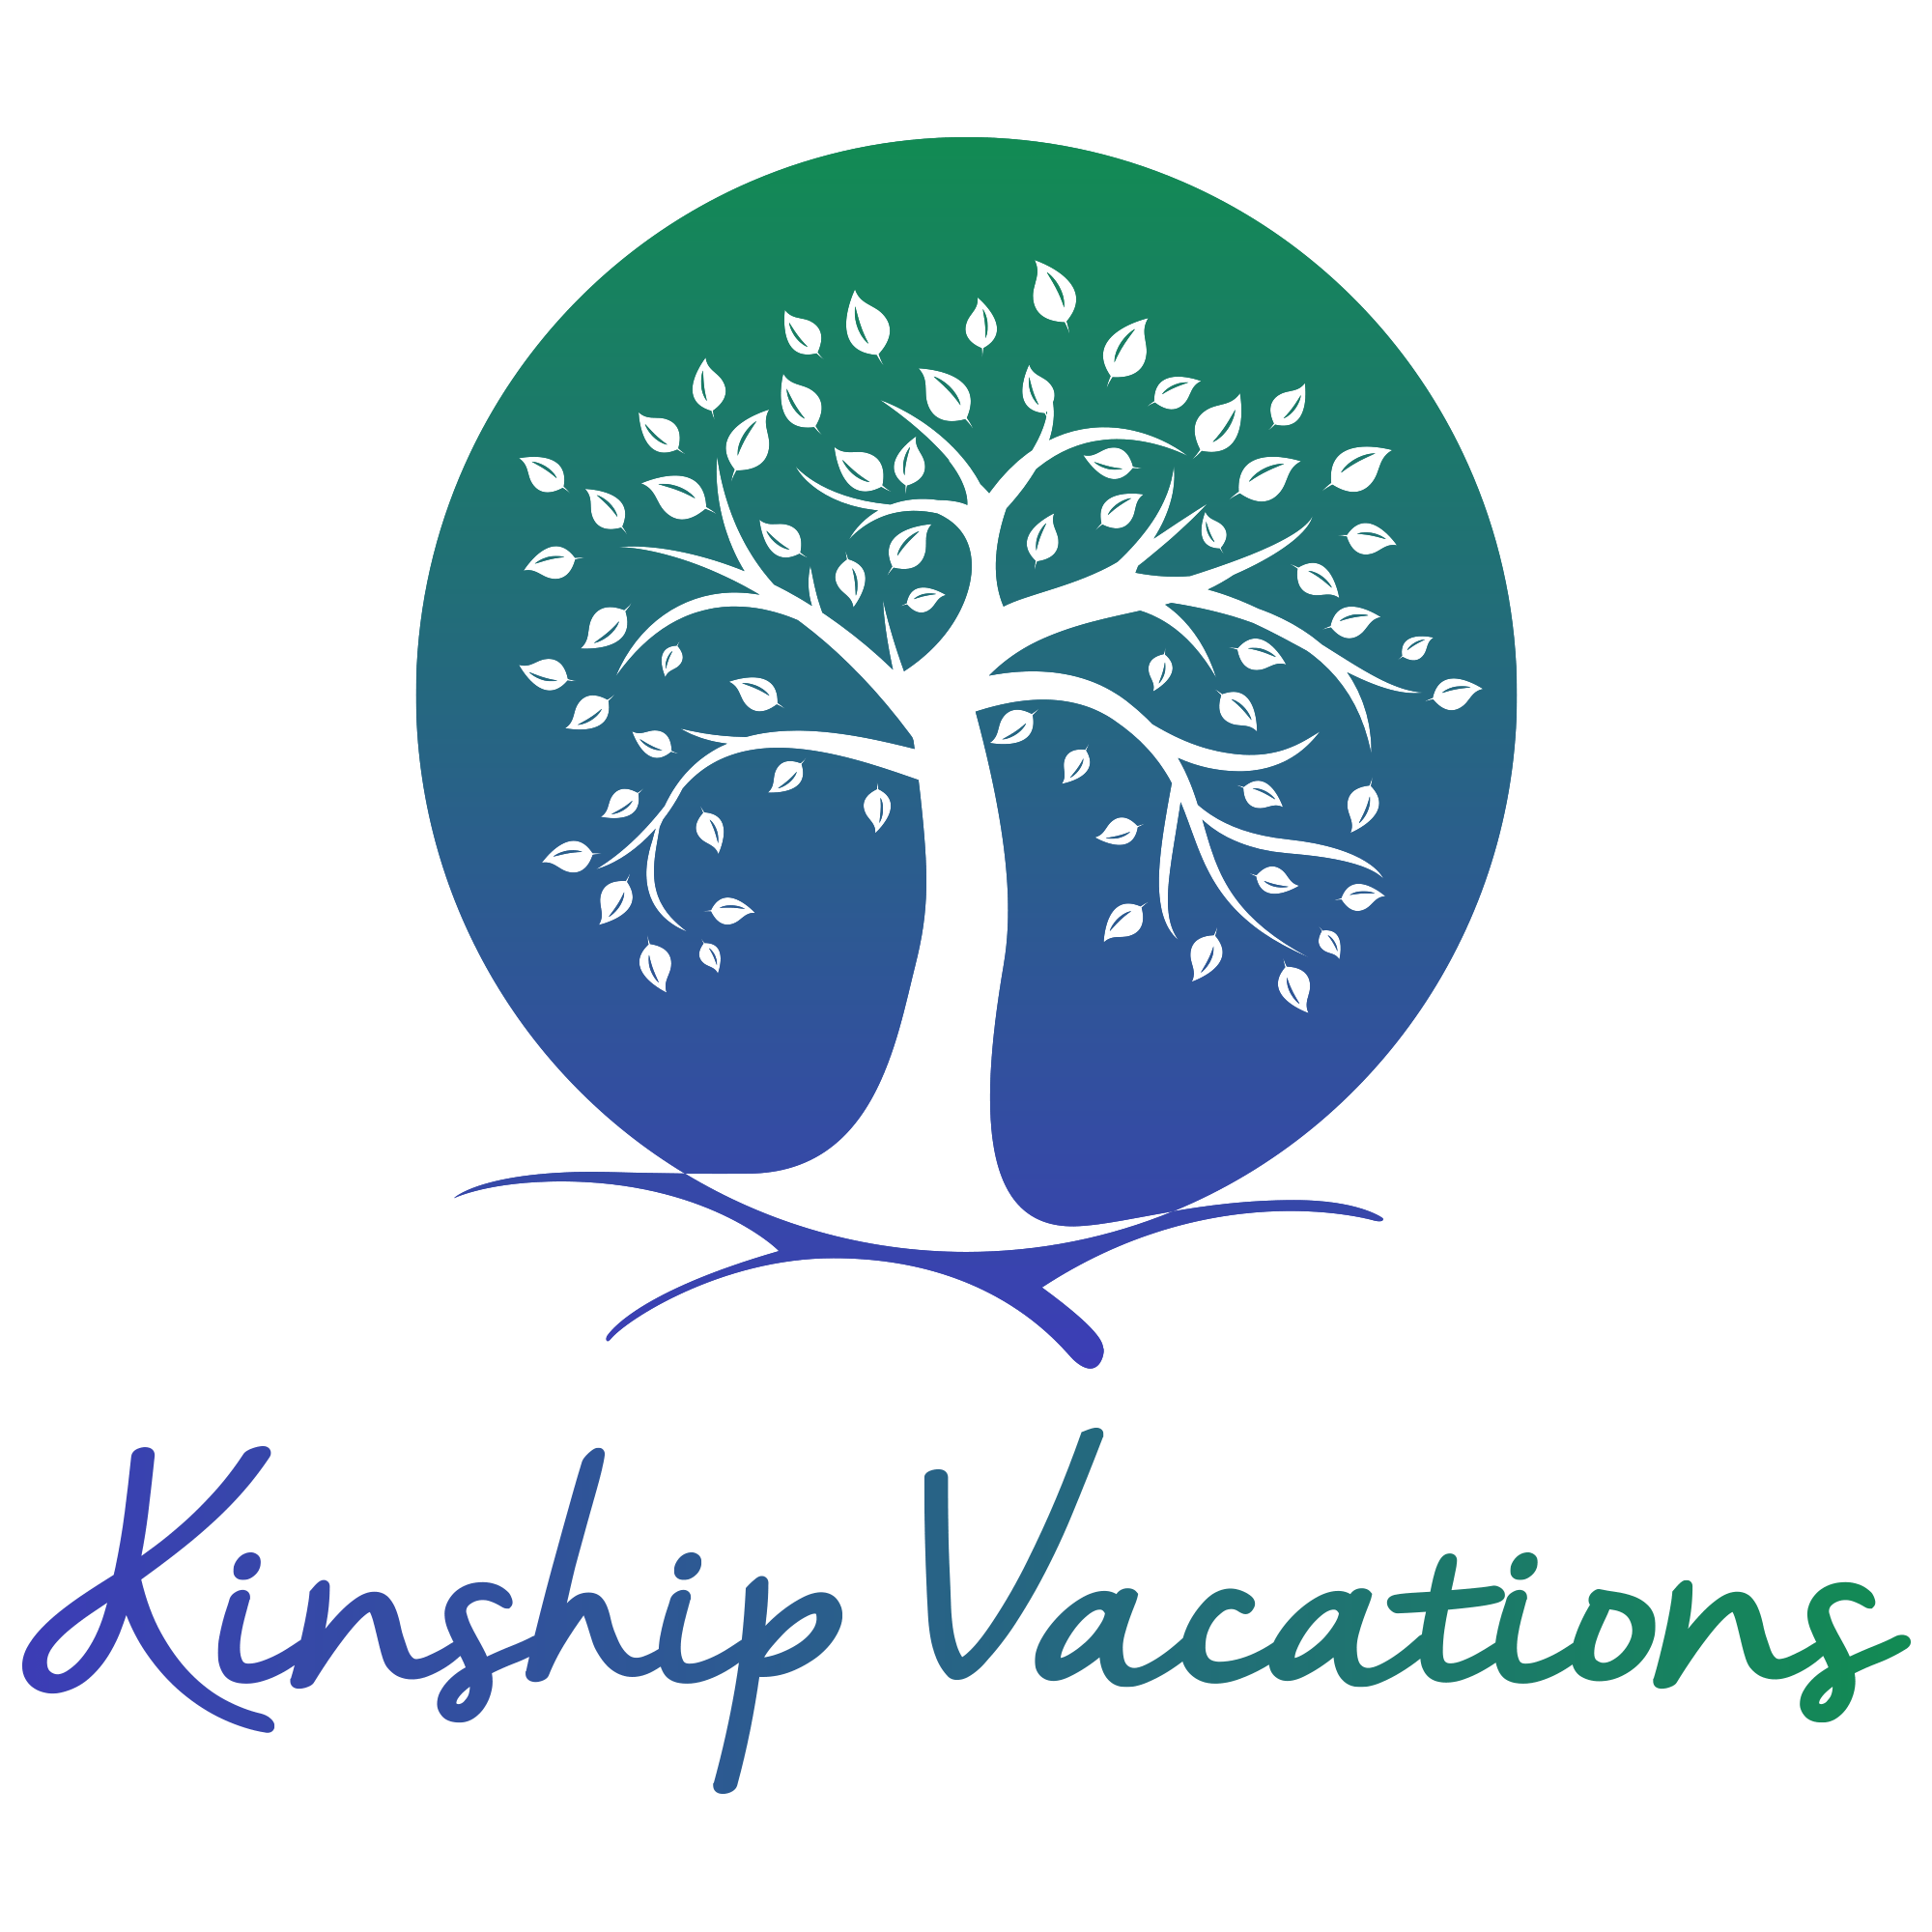 Young clipart kinship. Free guide vacations